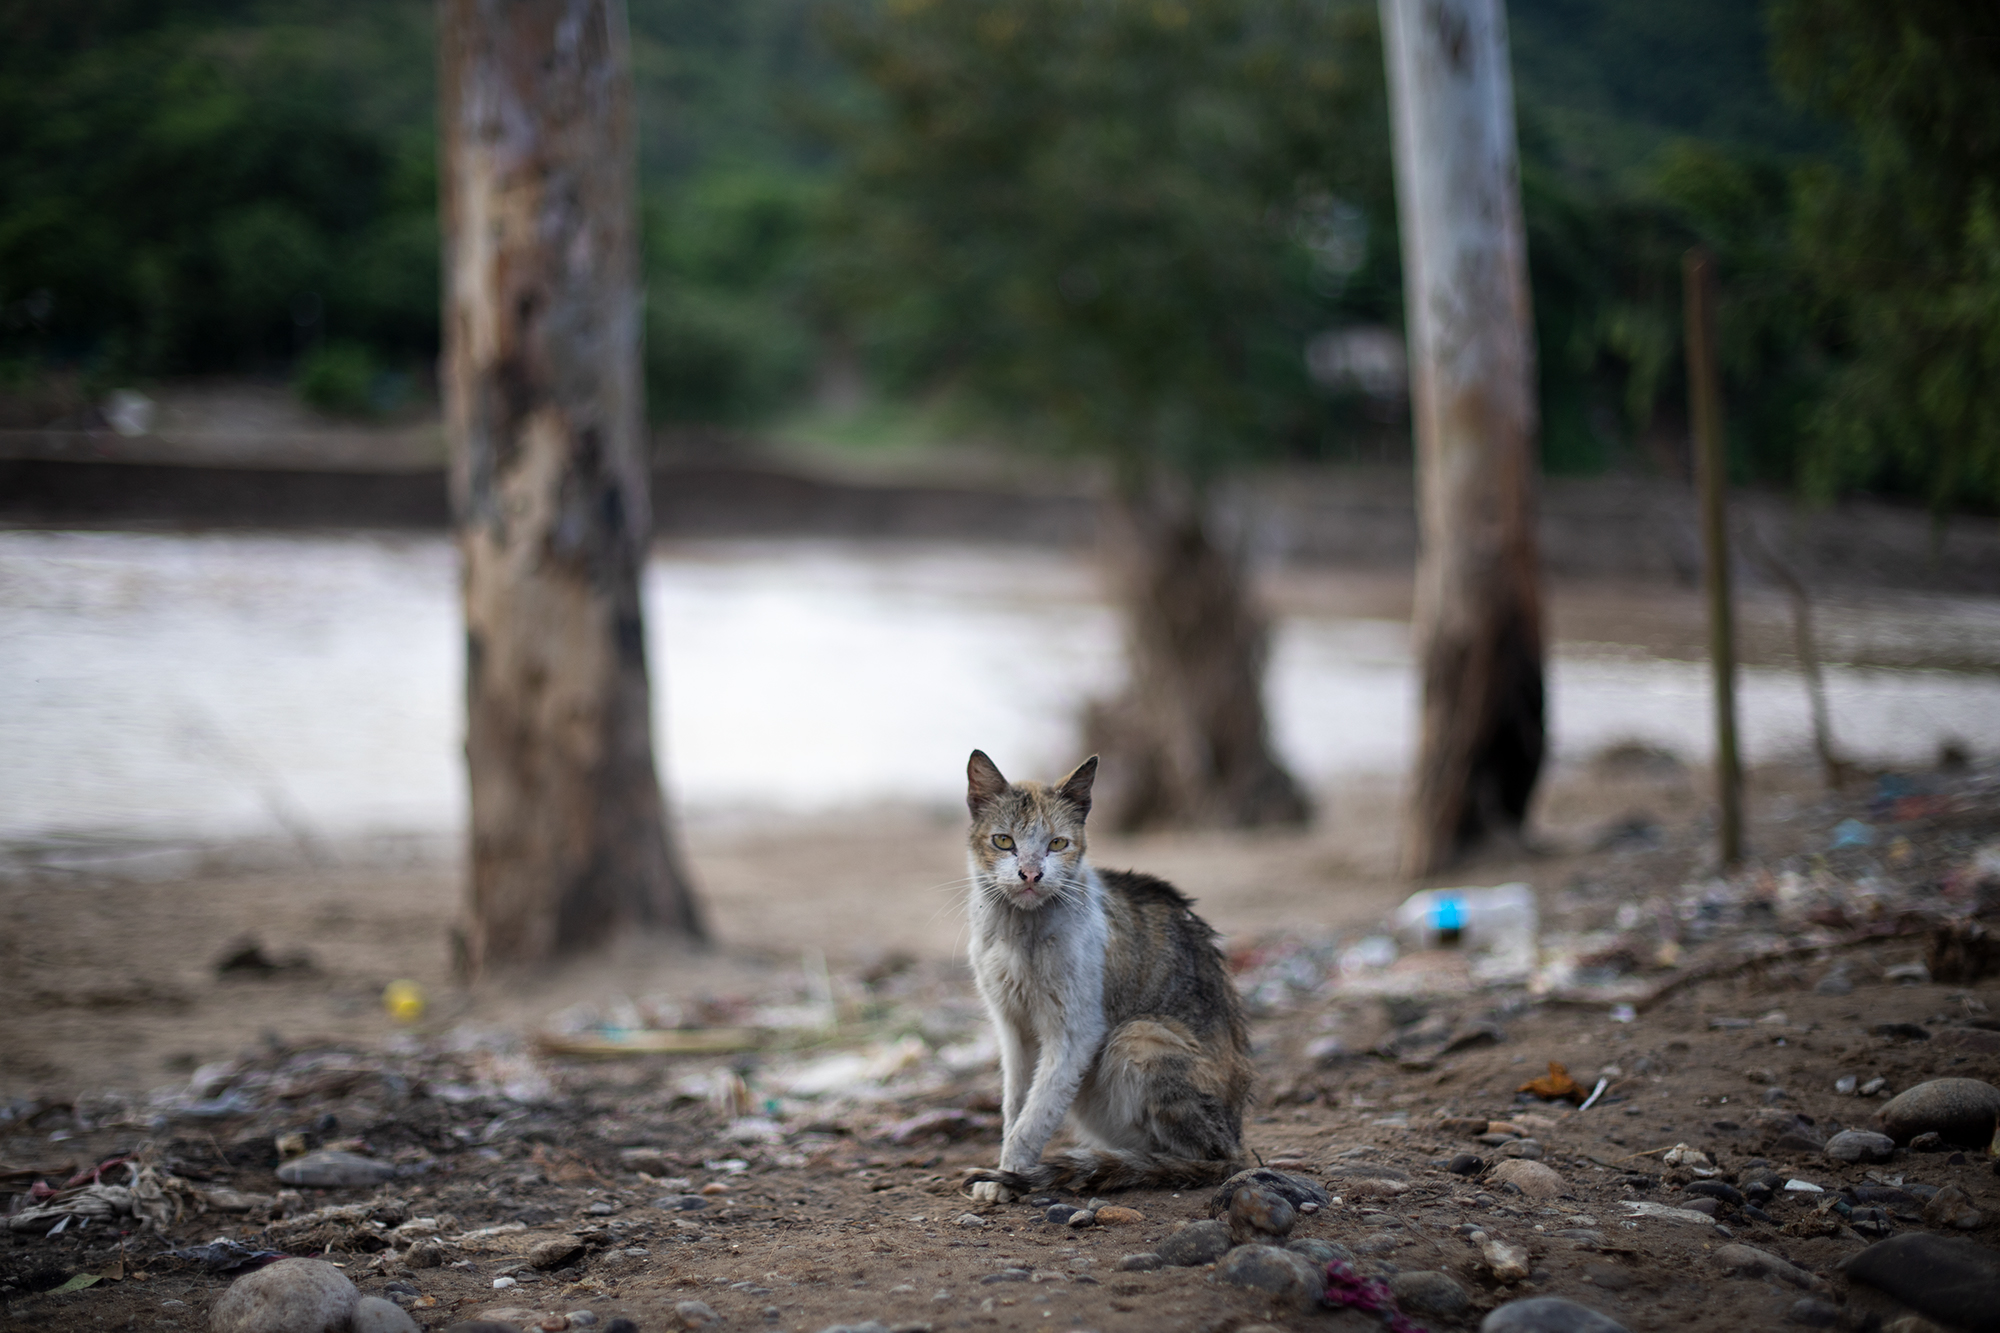 Animals like this cat were left to their own luck during the floods in the sector of Chamelecón. San Pedro Sula, Nov. 20, 2020. Photo: Martín Cálix.